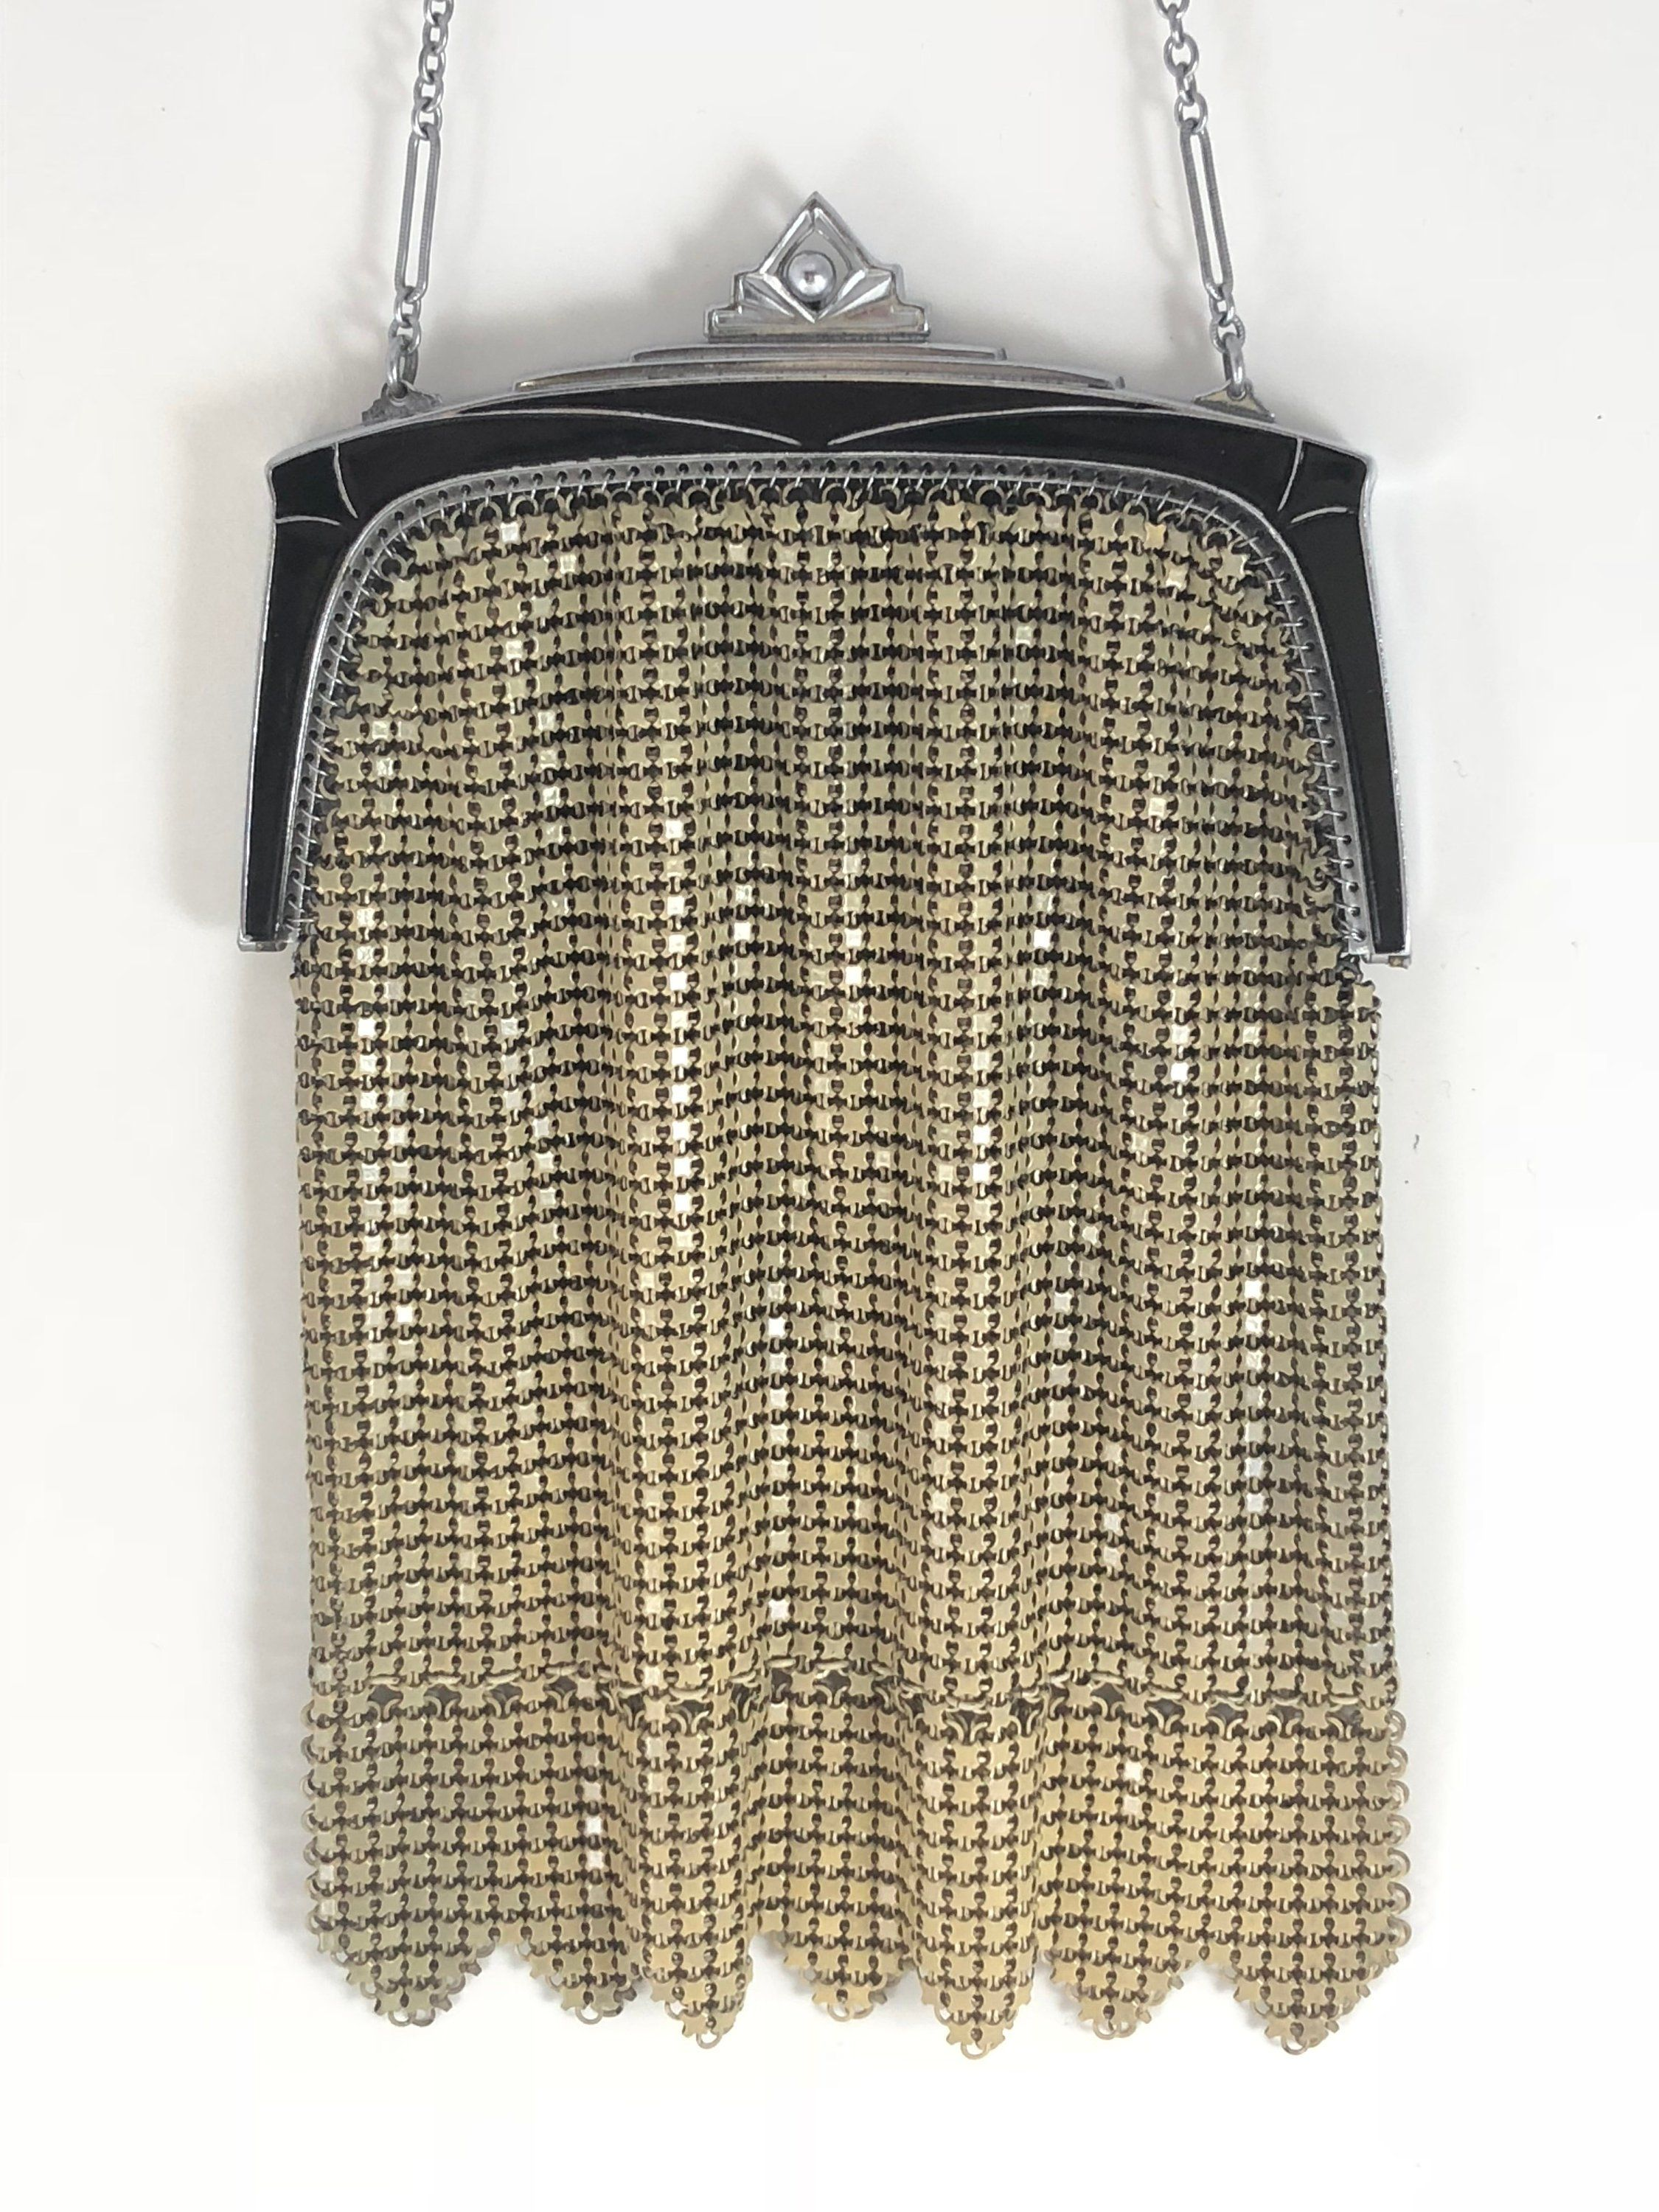 Vintage Evening Purse Small Lipstick//Coin Lined Antique Silver Tone Chain Strap